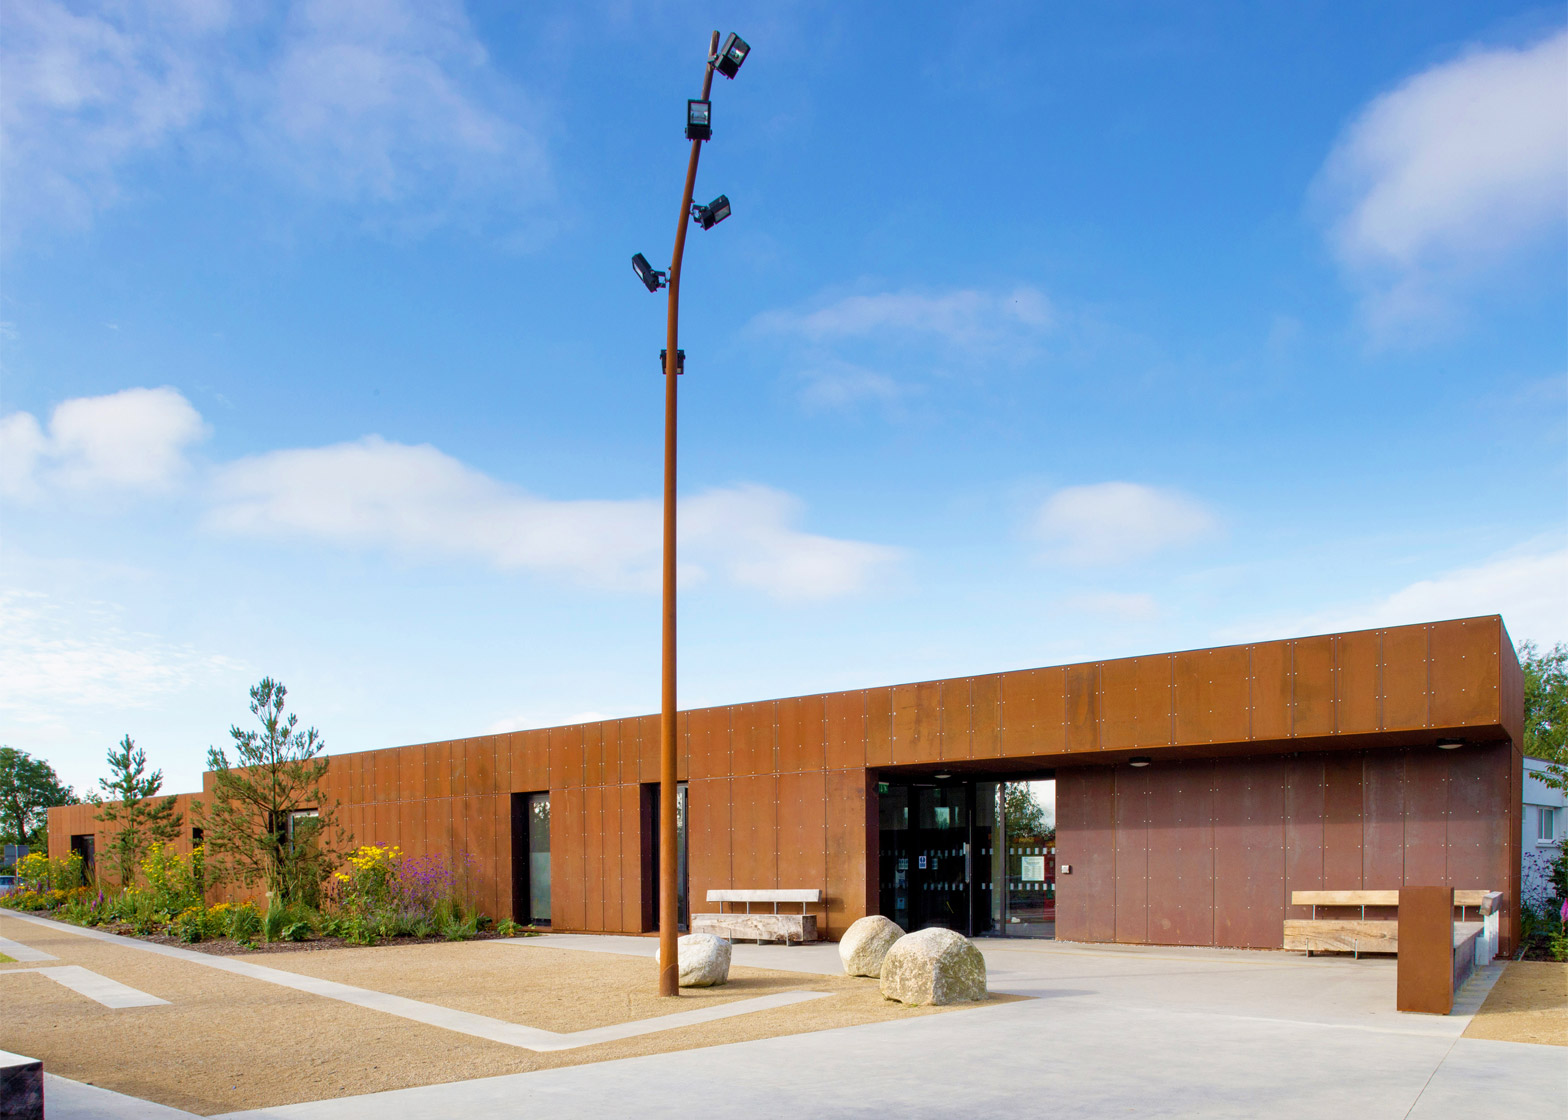 A 1960s portal frame structure has been refurbished at Nenagh Leisure Centre by ABK Architects in County Tipperary, Ireland